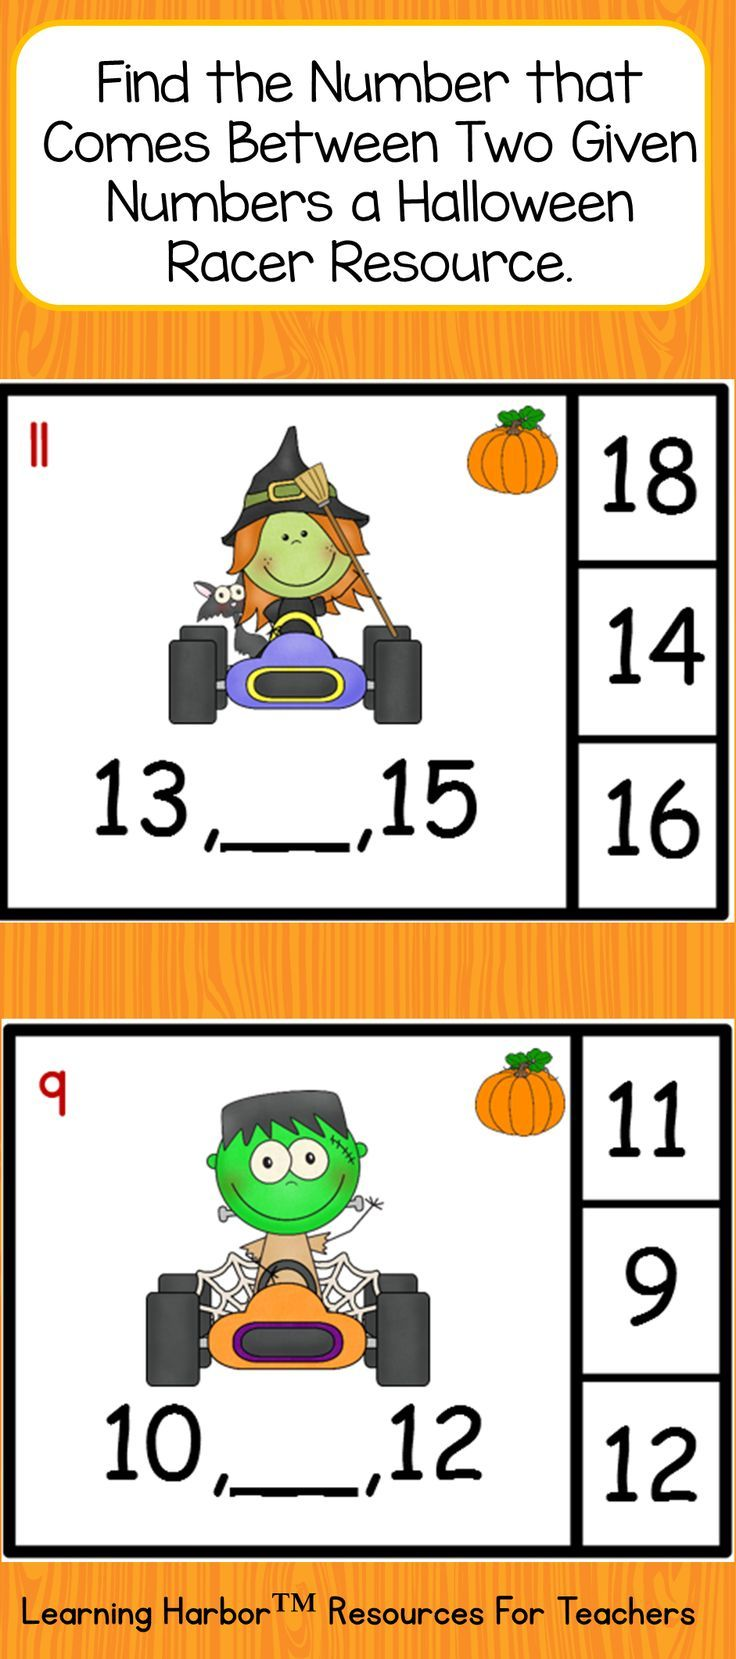 This Autumn / Fall and Halloween resource helps students master counting forward from a given number instead of beginning from 1, and counting to 50. These are building blocks for counting to 100 in kindergarten or counting to 120 in first grade.